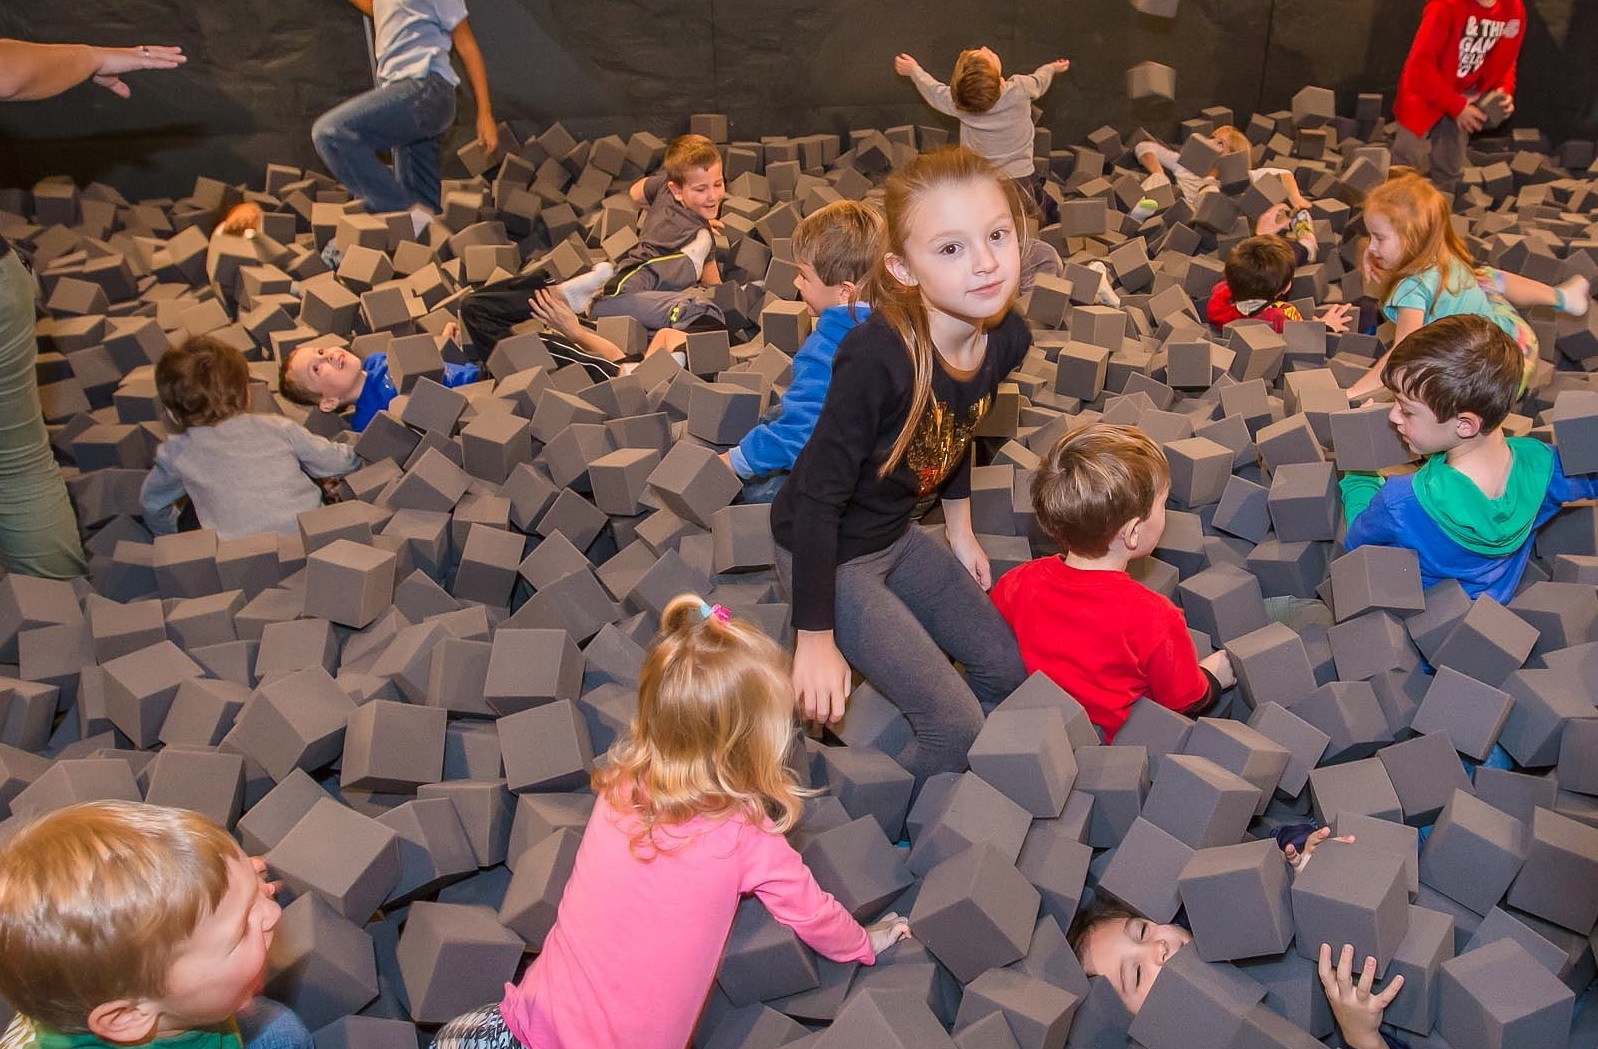 The Dig Pit at Dino Daze in the Buffalo Museum of Science. (Don Nieman/Special to The News)